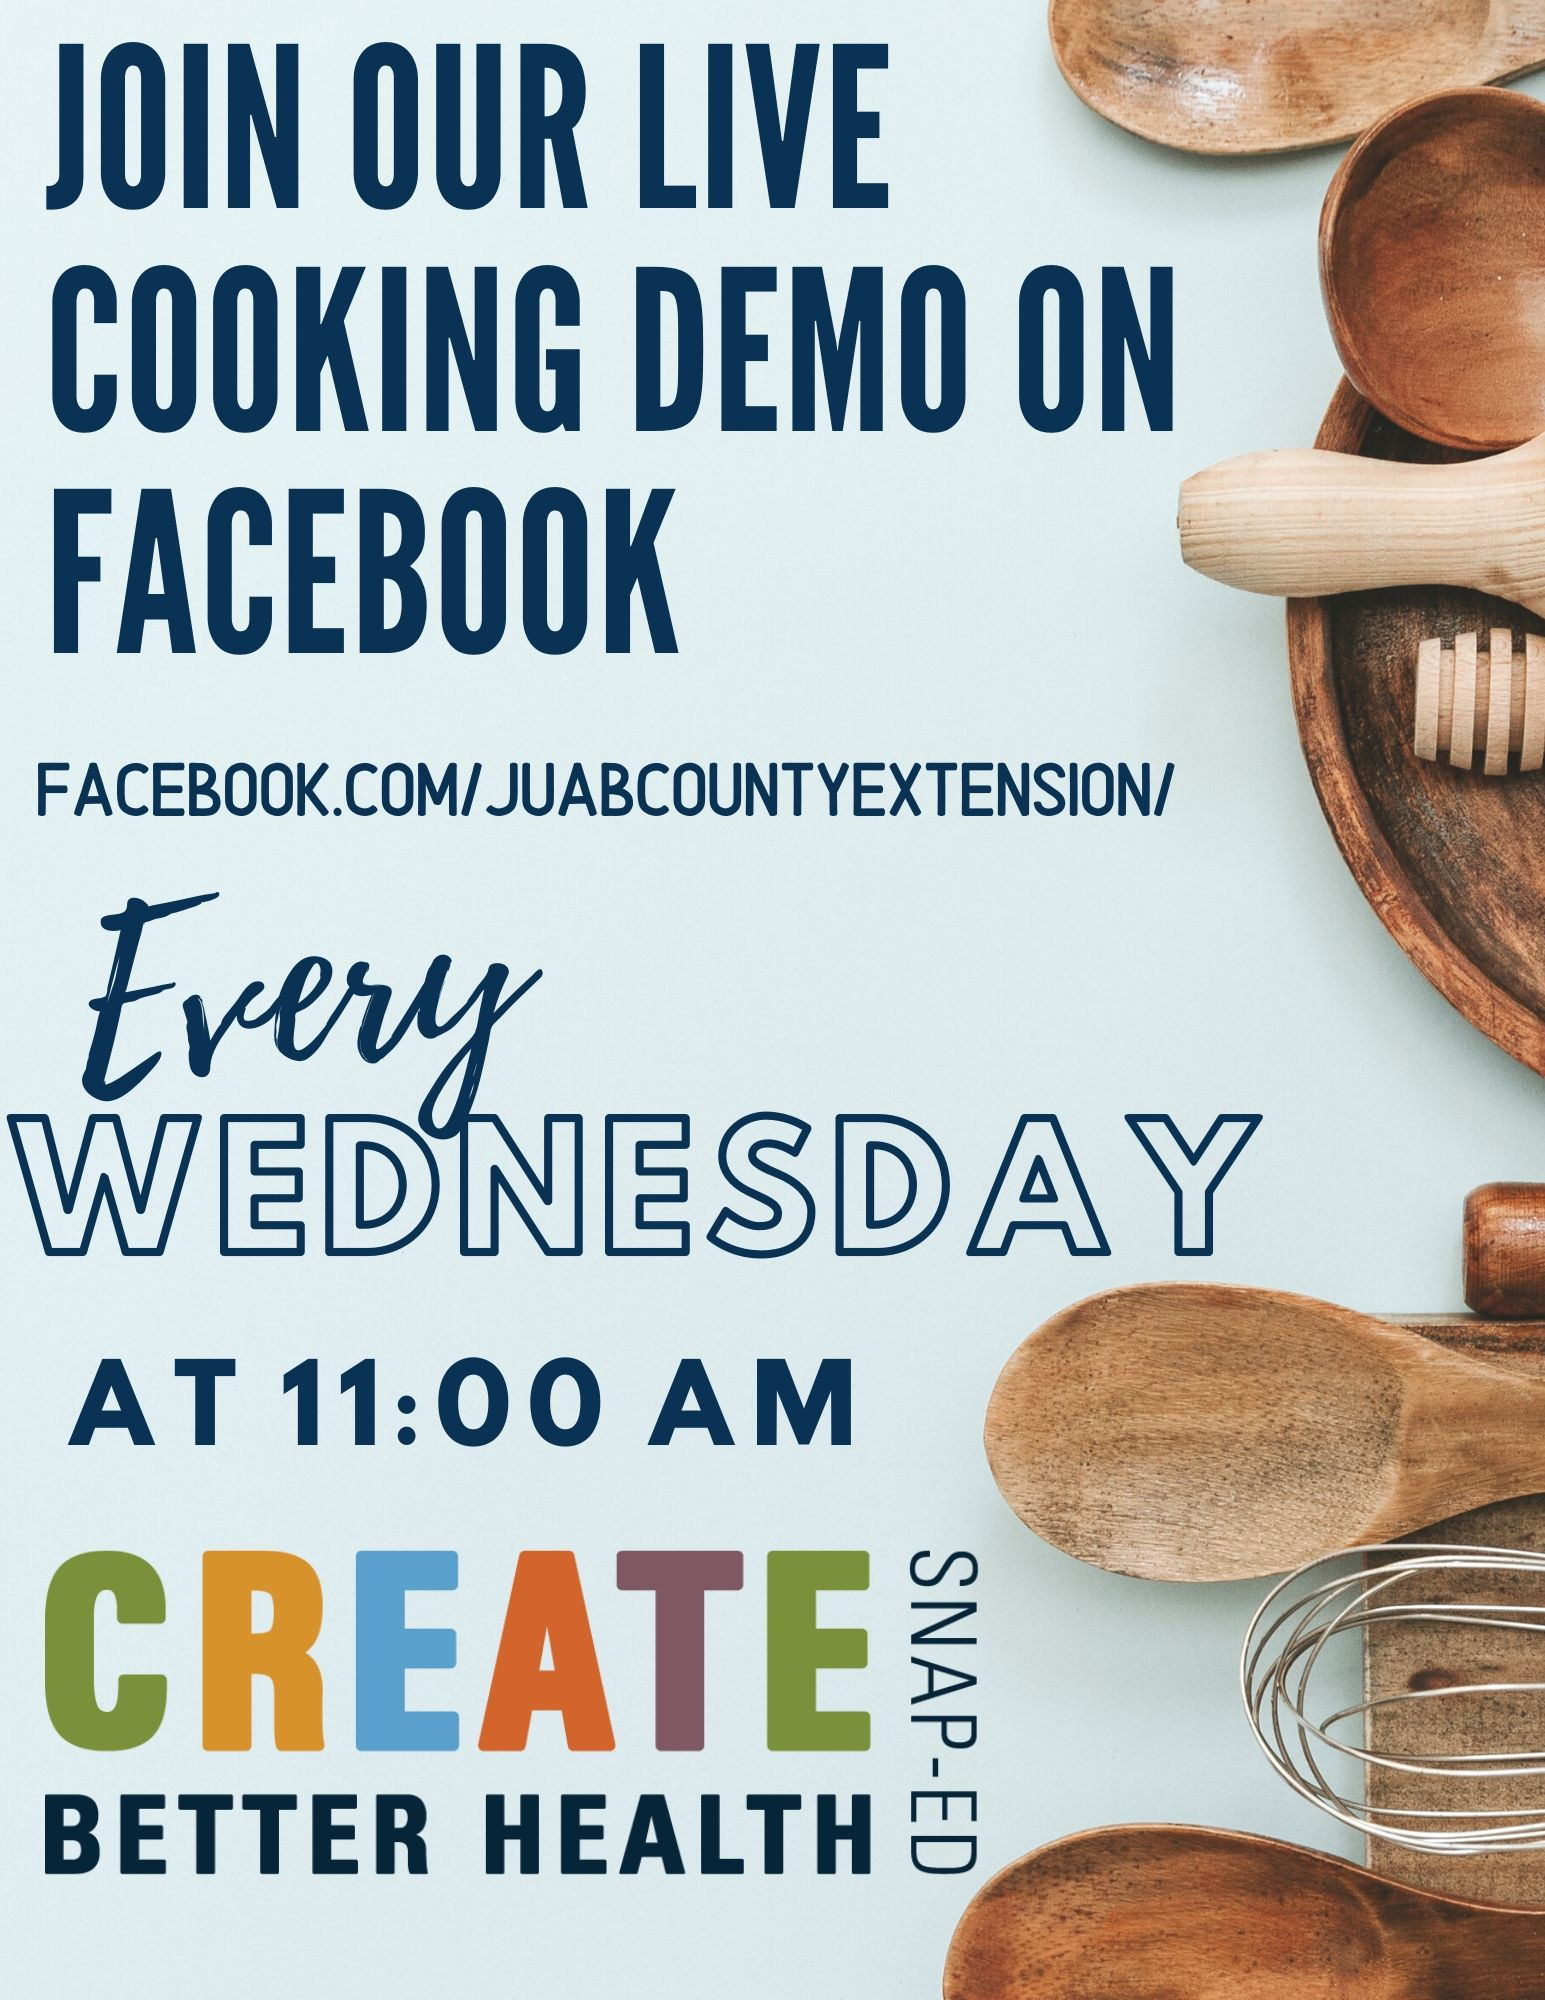 Join Our Live Cooking Demo on Facebook Every Wednesday at 11:00 AM at facebook.com/juabcountyextension/